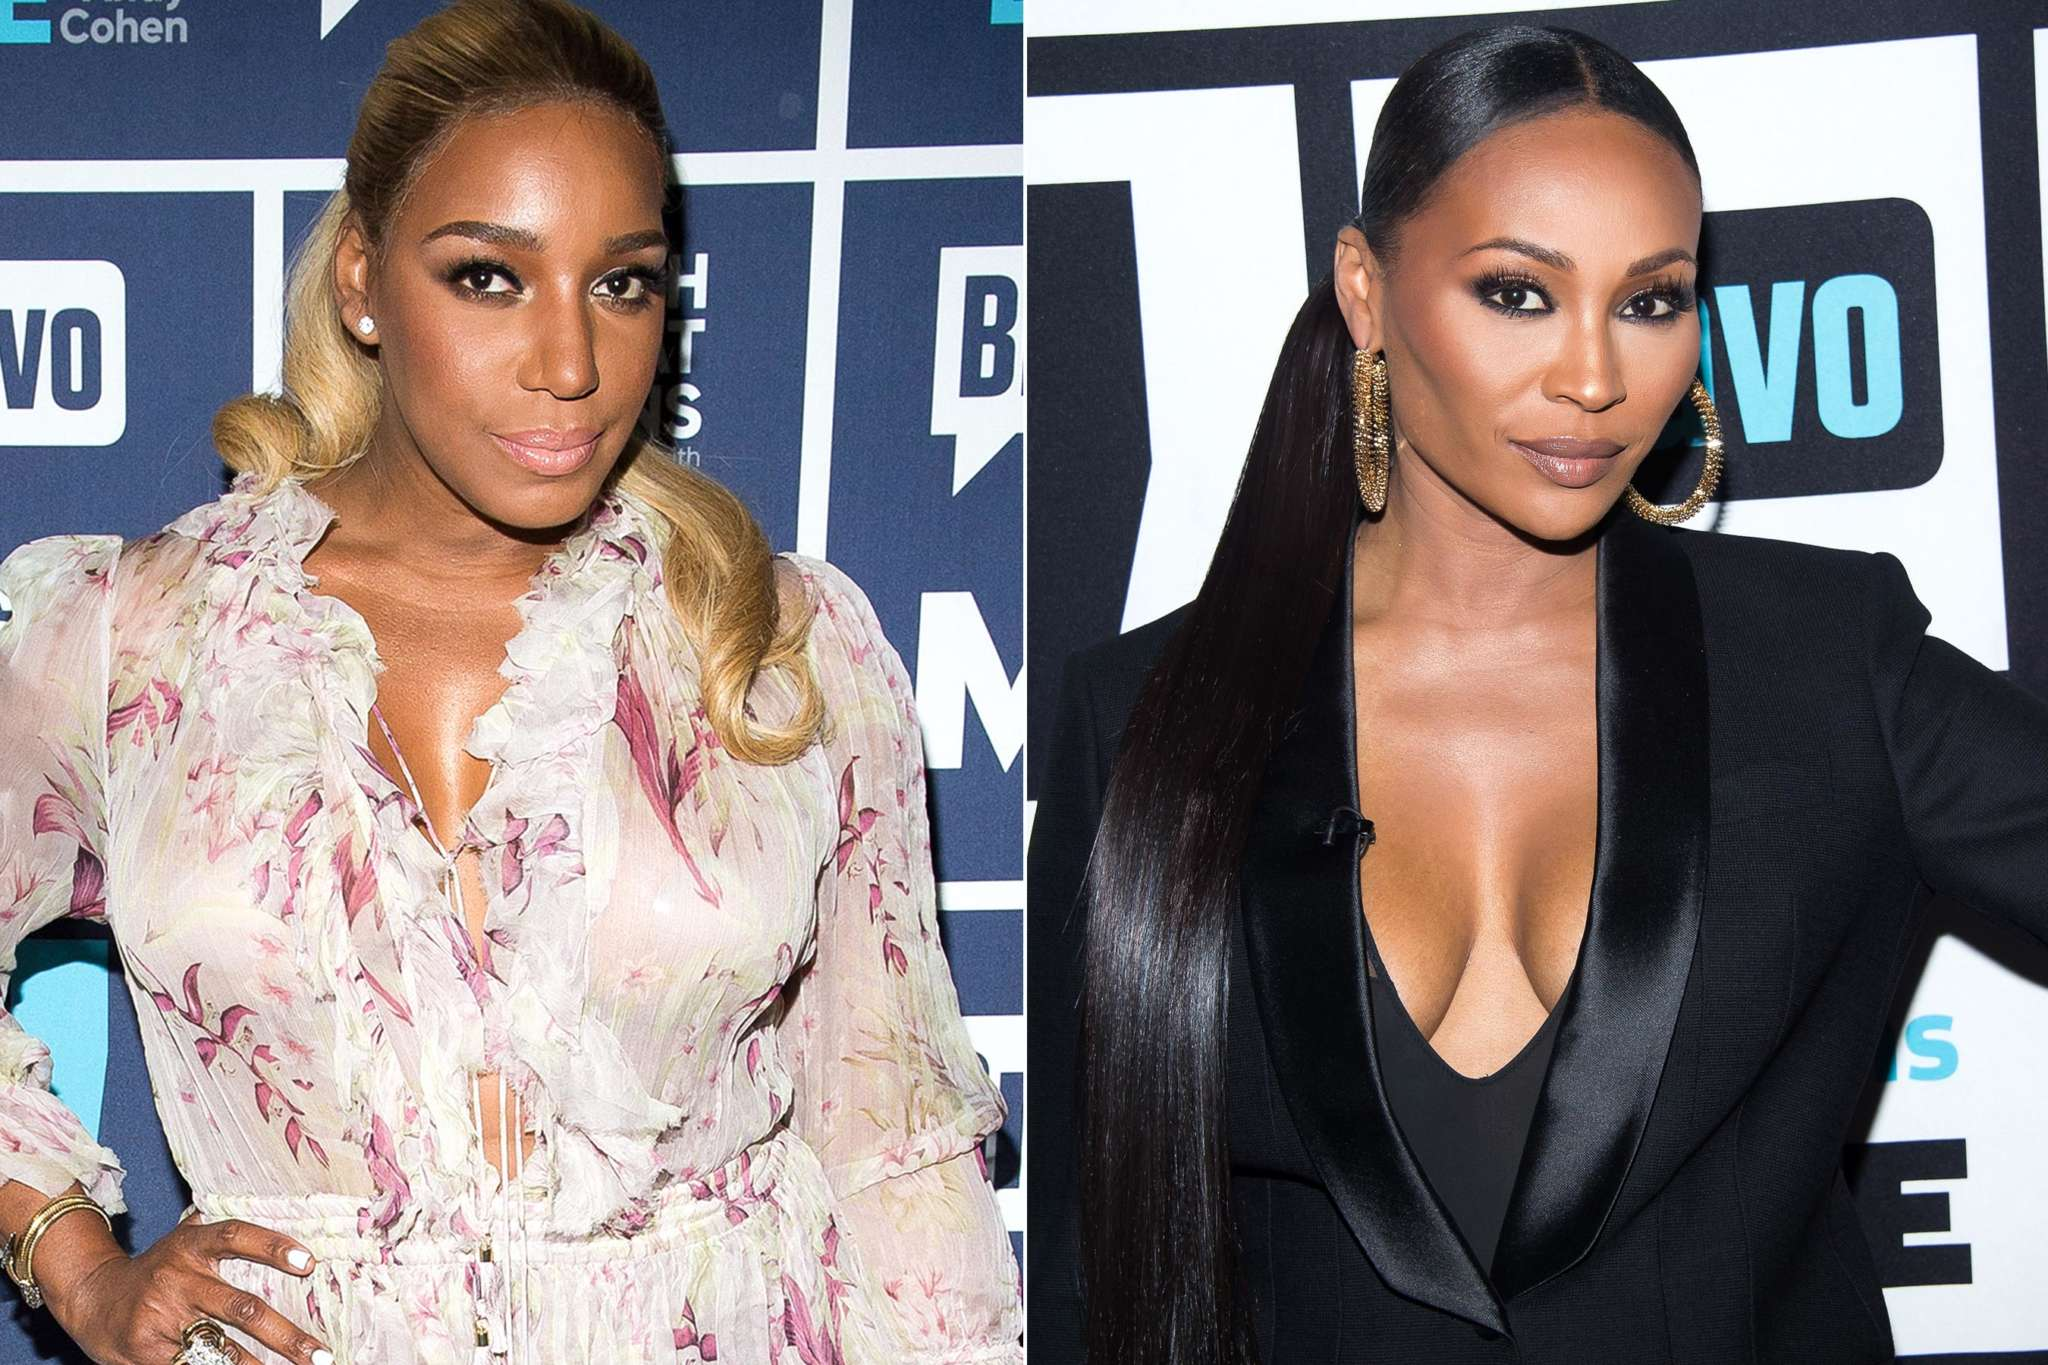 nene-leakes-goes-dark-on-instagram-as-cynthia-bailey-talks-about-rhoa-newbies-bailey-has-not-heard-from-leakes